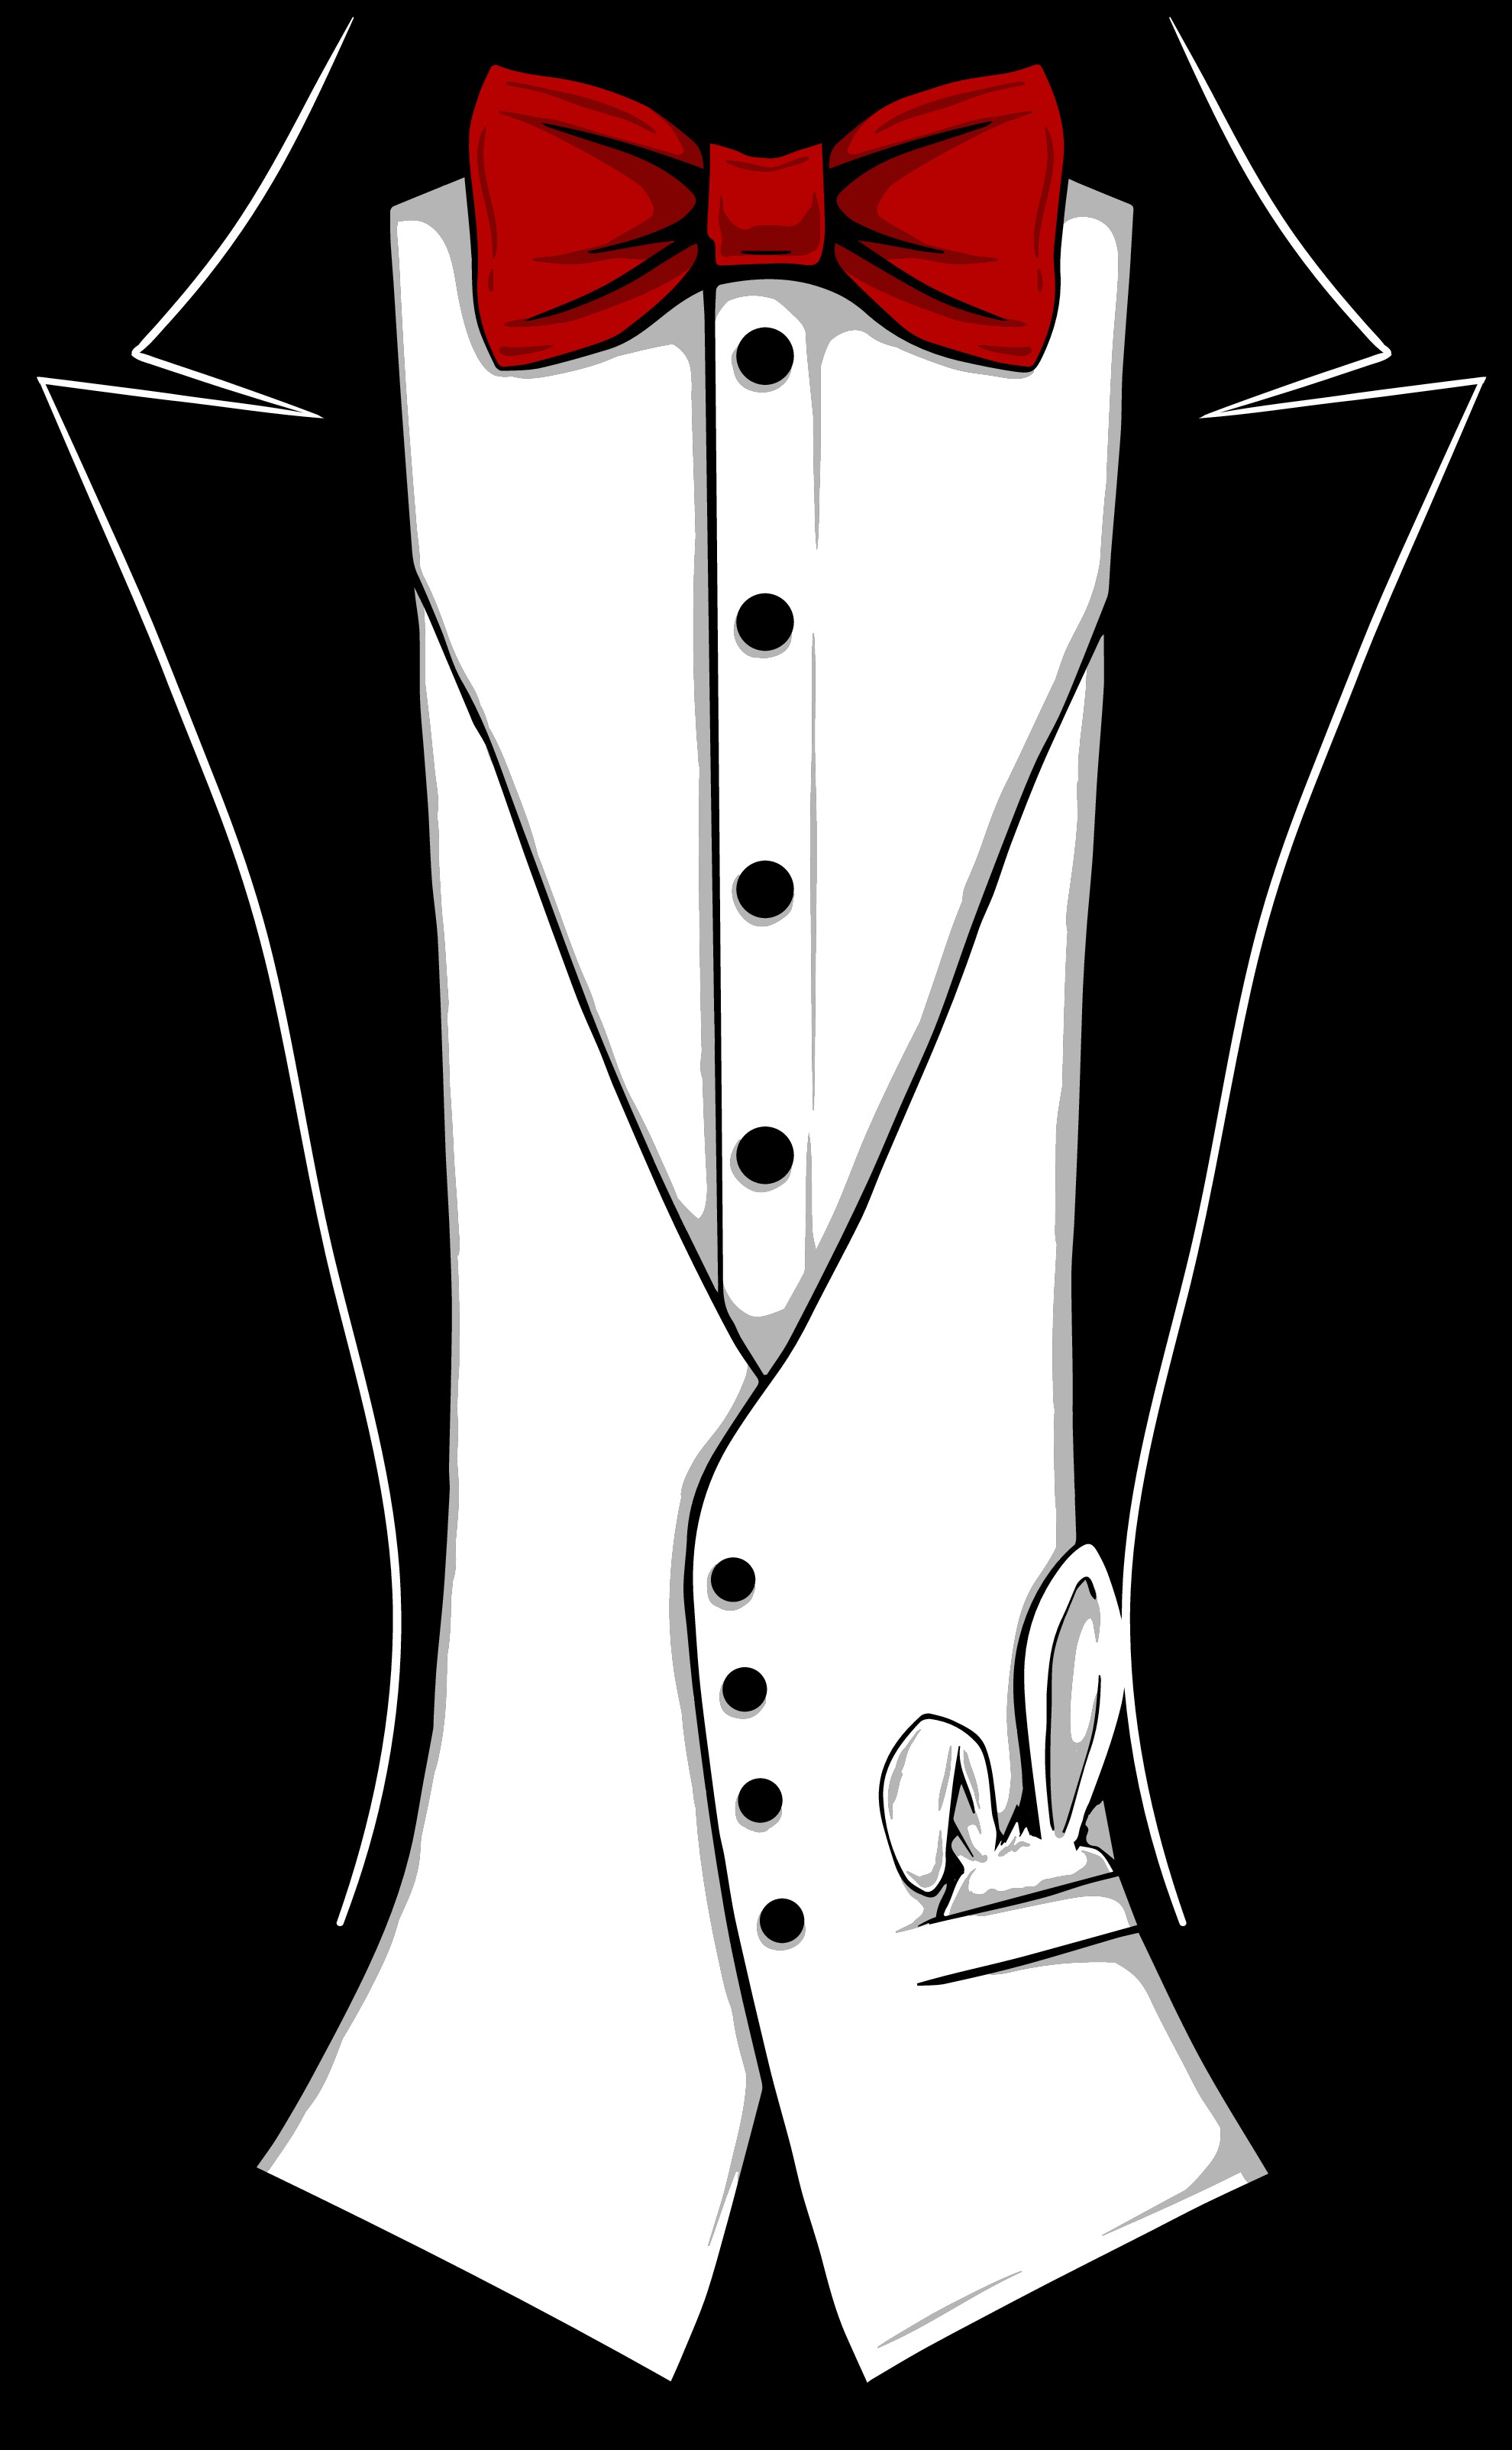 Tuxedo-T-shirt Design for a magician - multiple winners possible